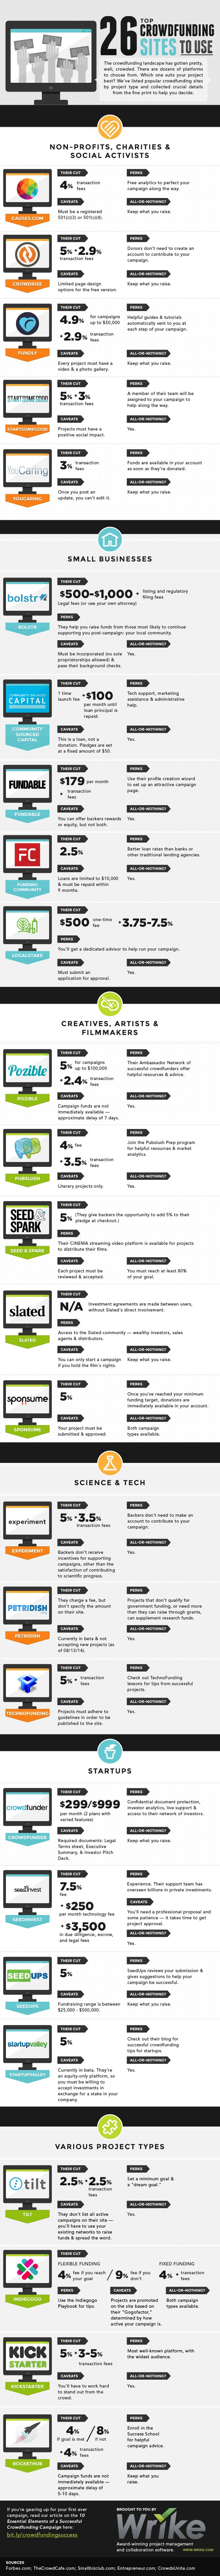 Definitive Guide to Crowdfunding Sites - #Infographic #crowdsourcing #fundraising